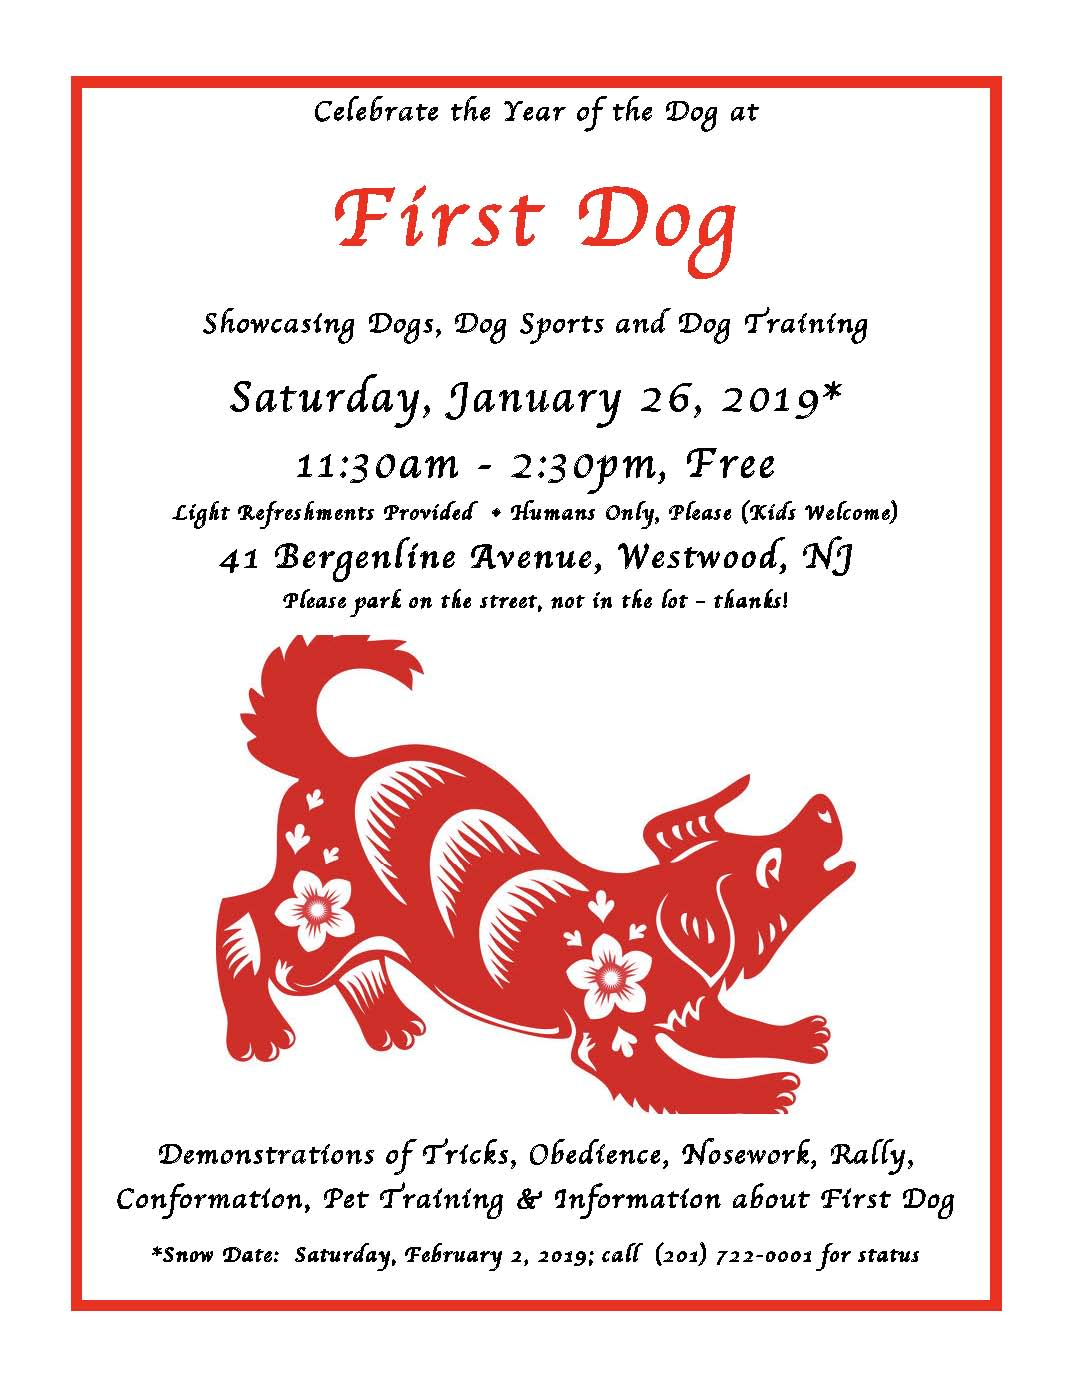 First Dog's Year of the Dog Open House and Demonstrations